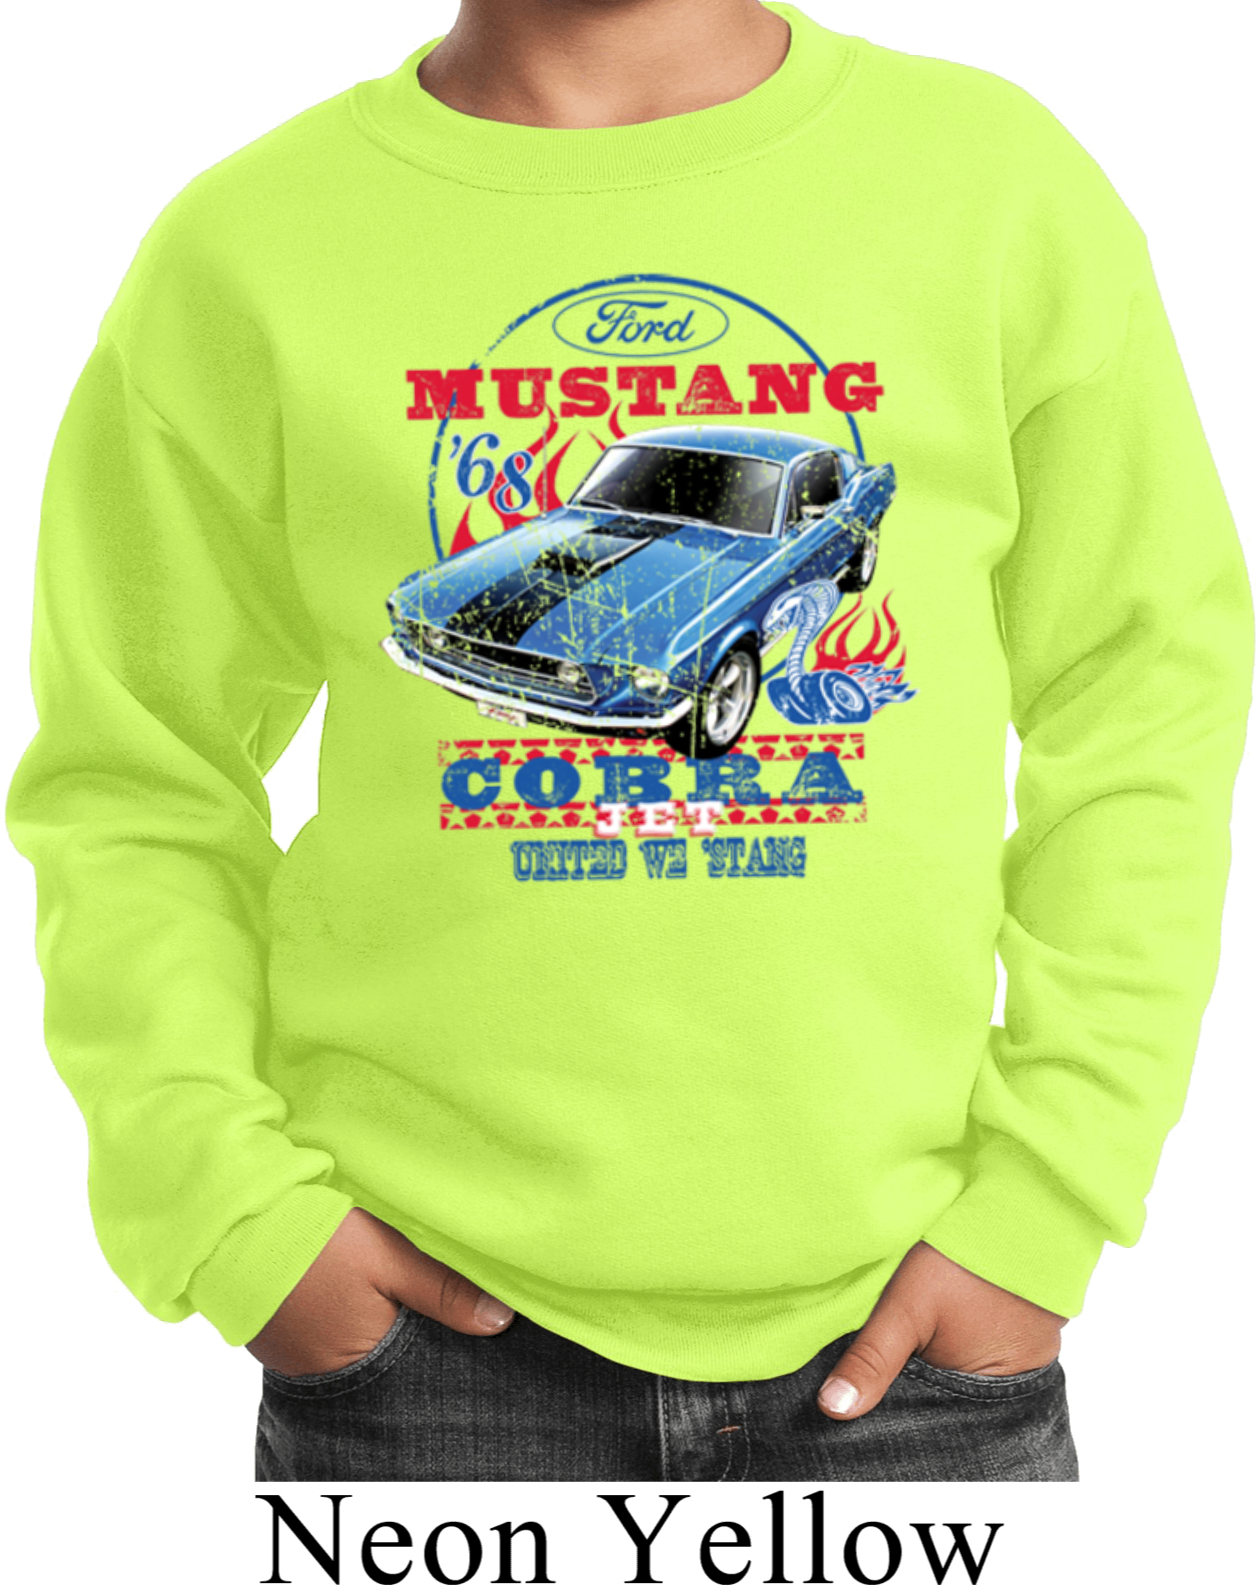 Ford Mustang Cobra 1968 Long Sleeve T-Shirt United We Stang American Classic Tee